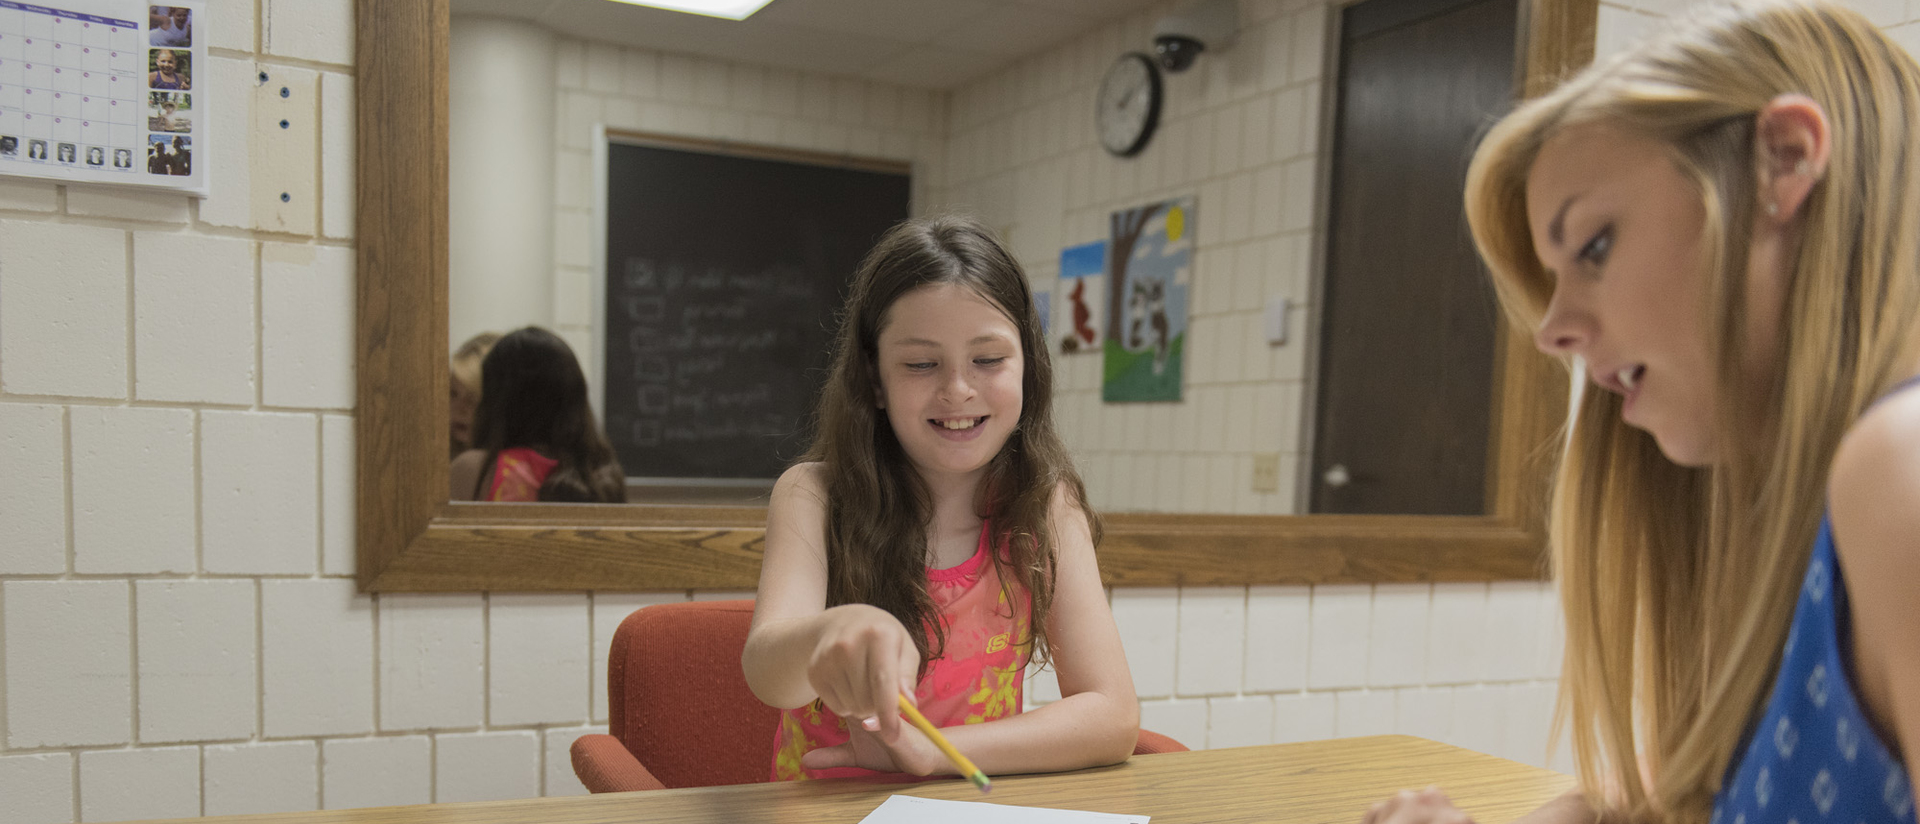 Sophie Topper, 9, is building her math skills and confidence through her work with school psychology graduate student Jill Heitman.